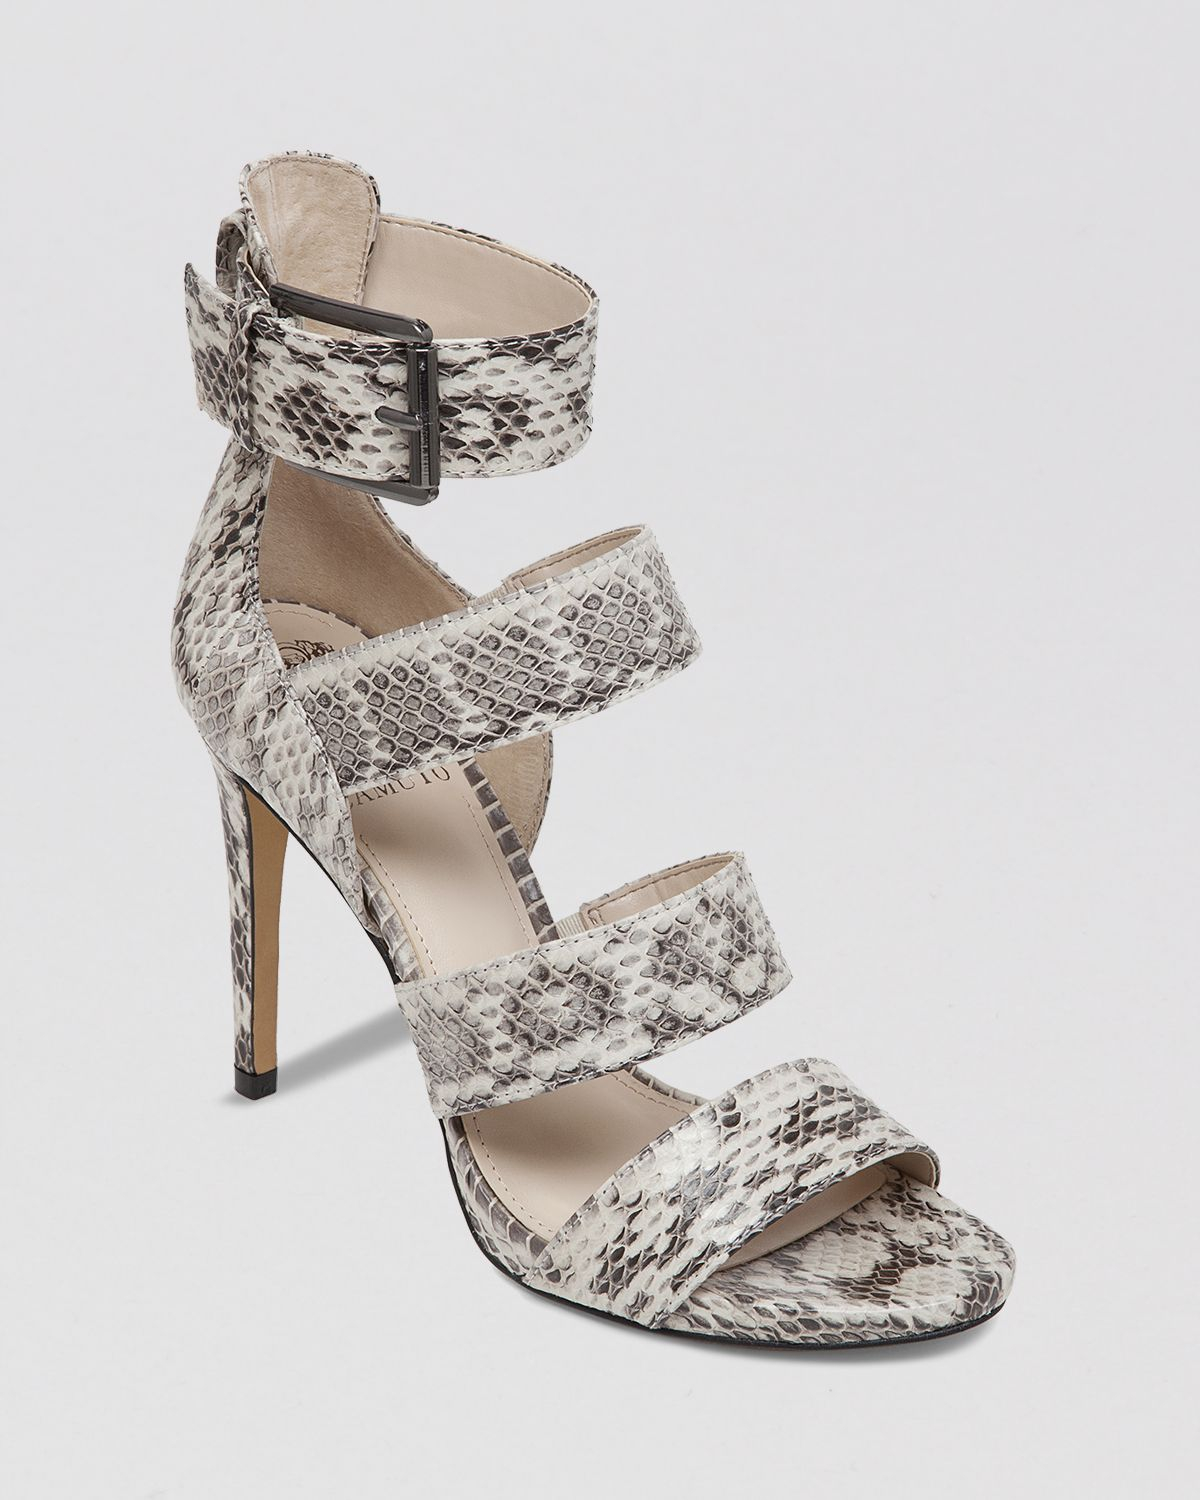 Vince Camuto Snake Print Multi Strap Sandals Rittel High